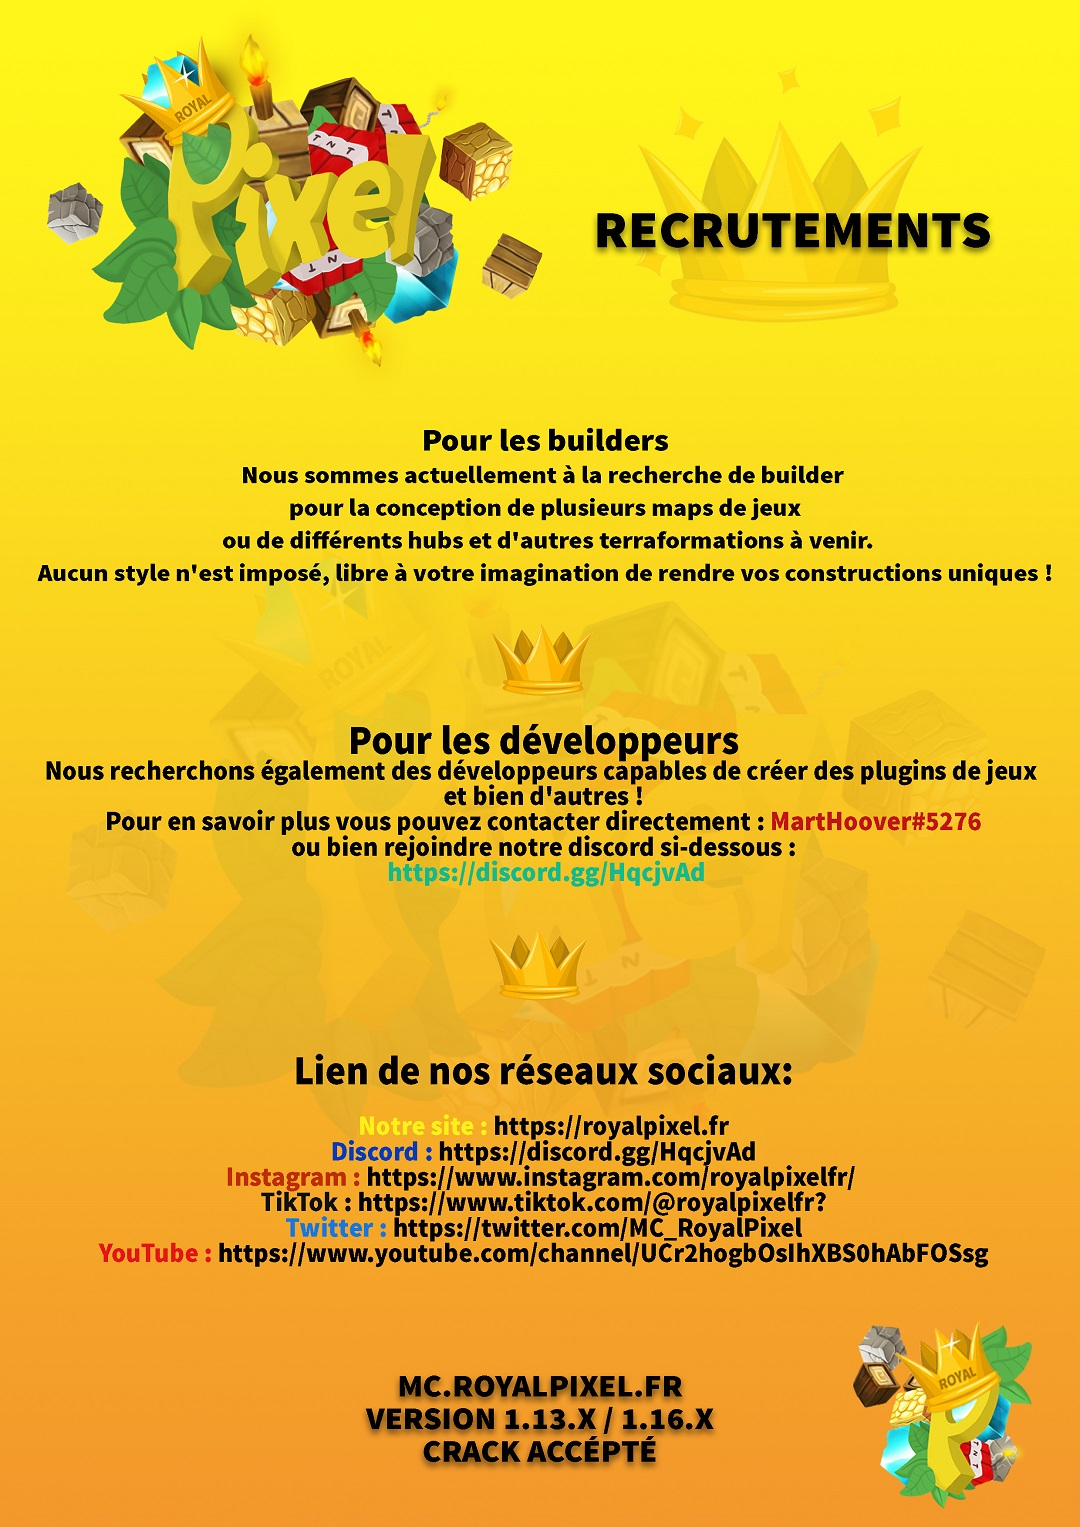 Recrutements_RoyalPixel.jpg